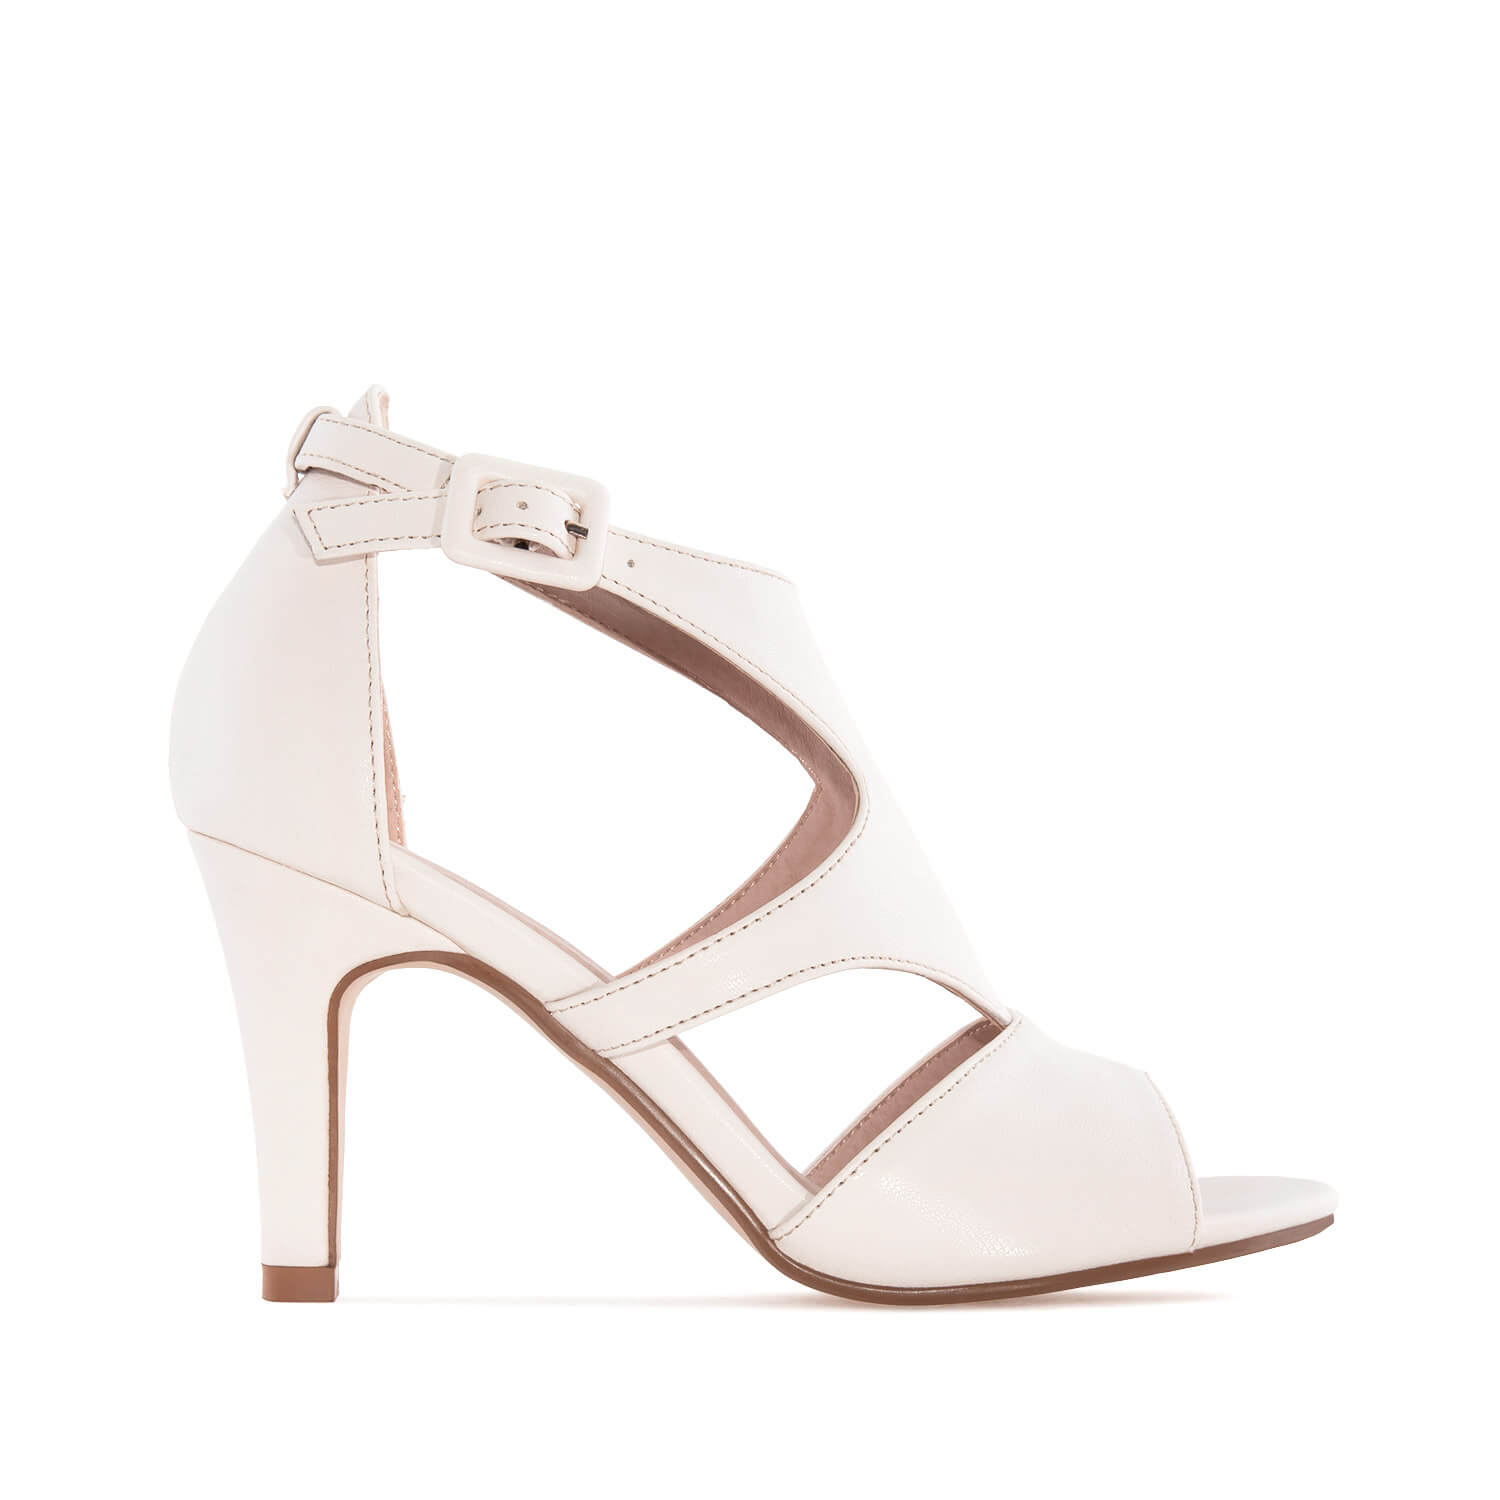 Sandalen in Soft Beige